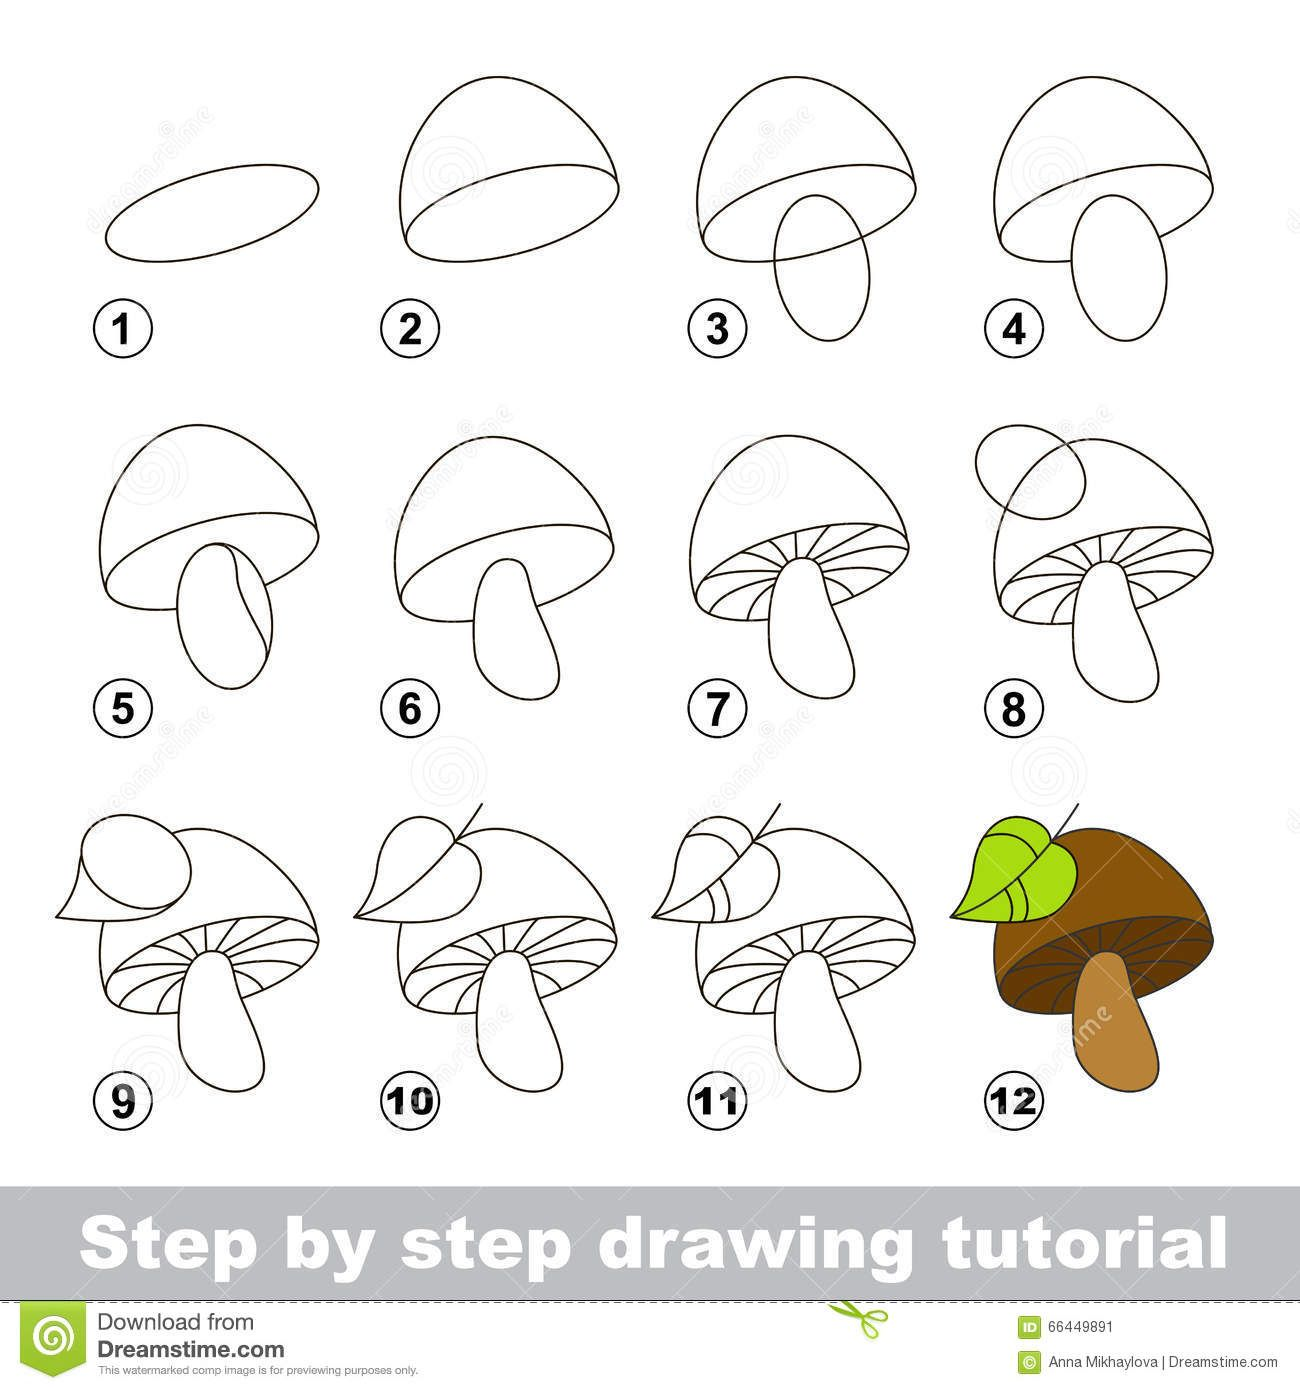 How To Draw A Mushroom Easy Step By Step For Kids Beginners ...